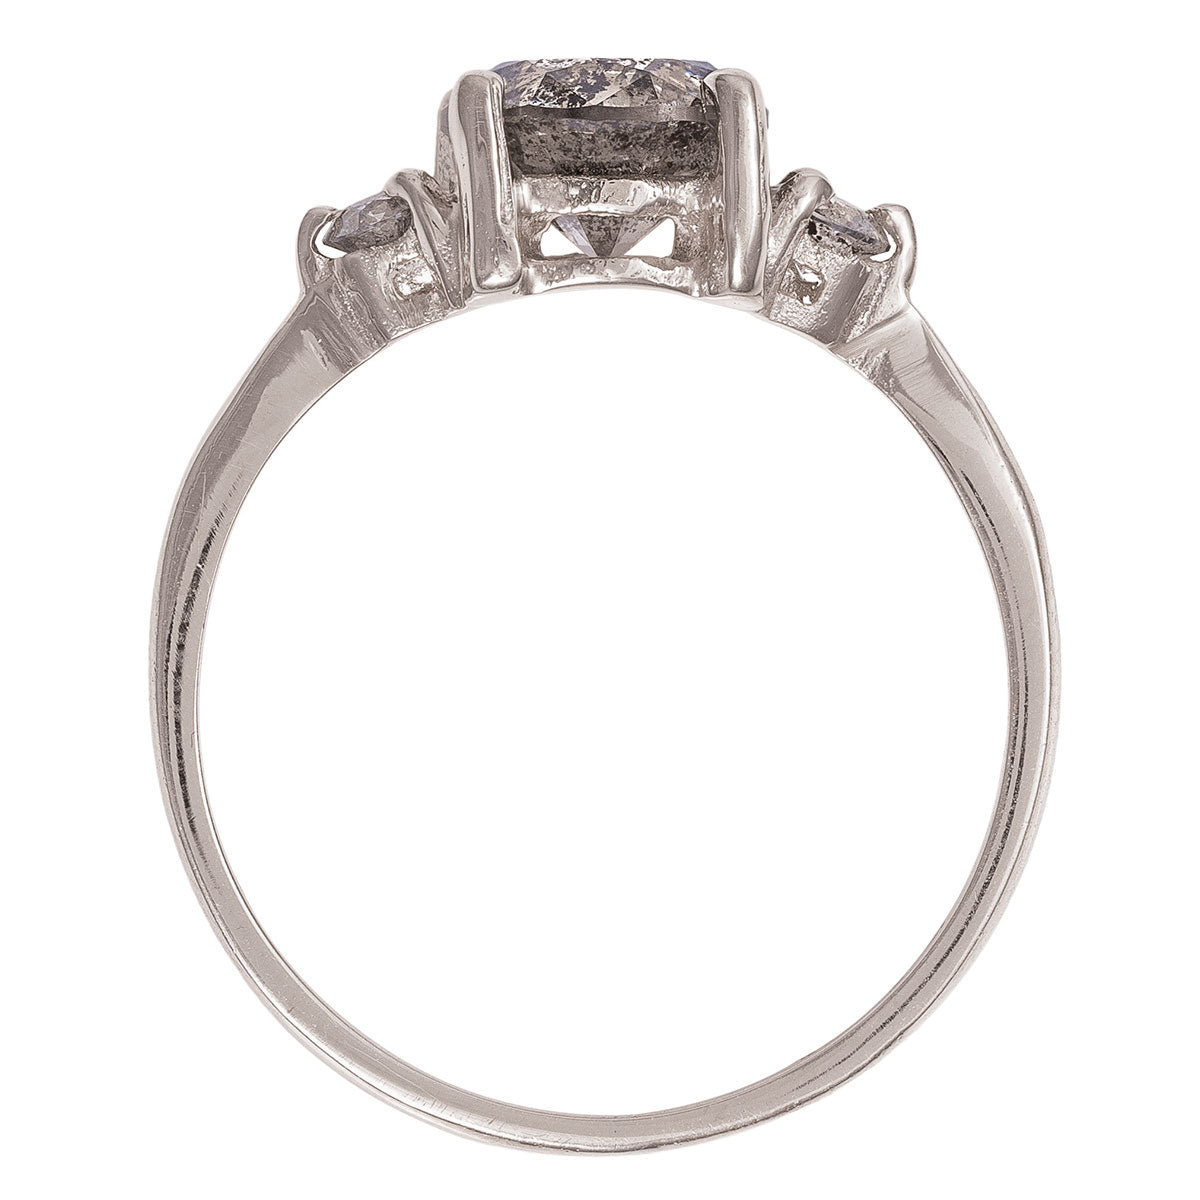 Chupi - Grey Diamond Engagement Ring - Solid White Gold One Carat - Polished Band You Me & Magic